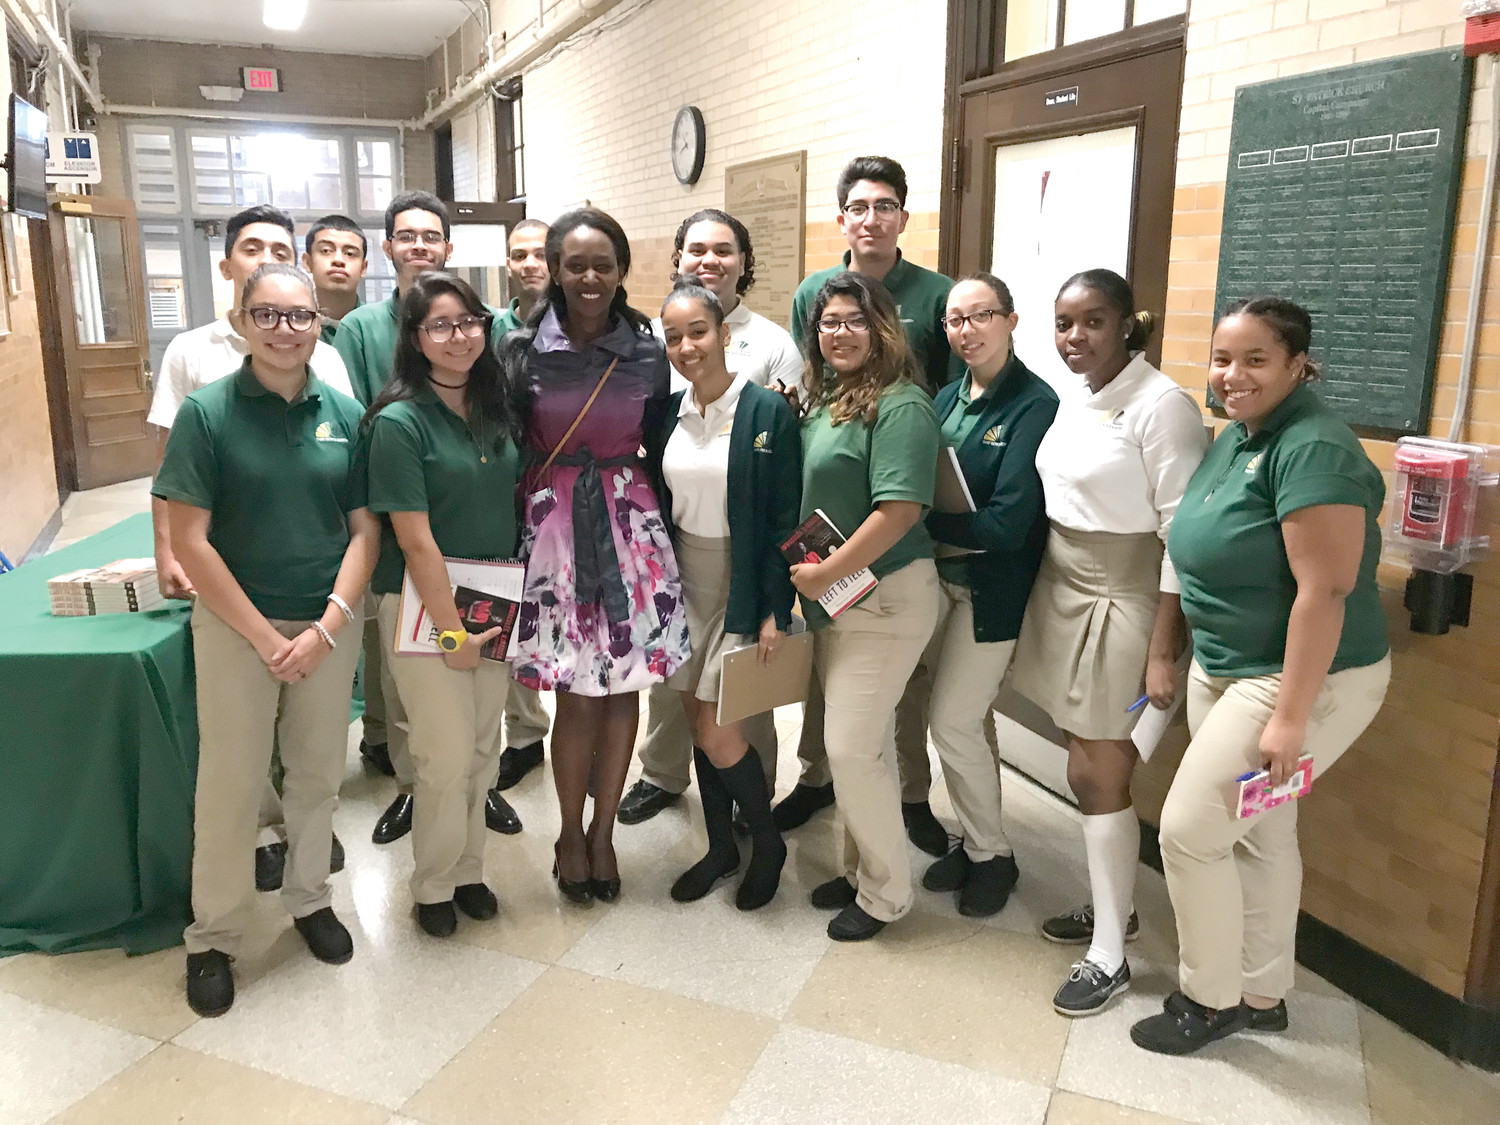 On October 11, Ilibagiza also visited St. Patrick Academy in Providence to talk to students, including five diocesan middle schools, St. Paul School, Woodlawn Catholic Regional, Blessed Sacrament School, Bishop McVinney School and St. Pius School.